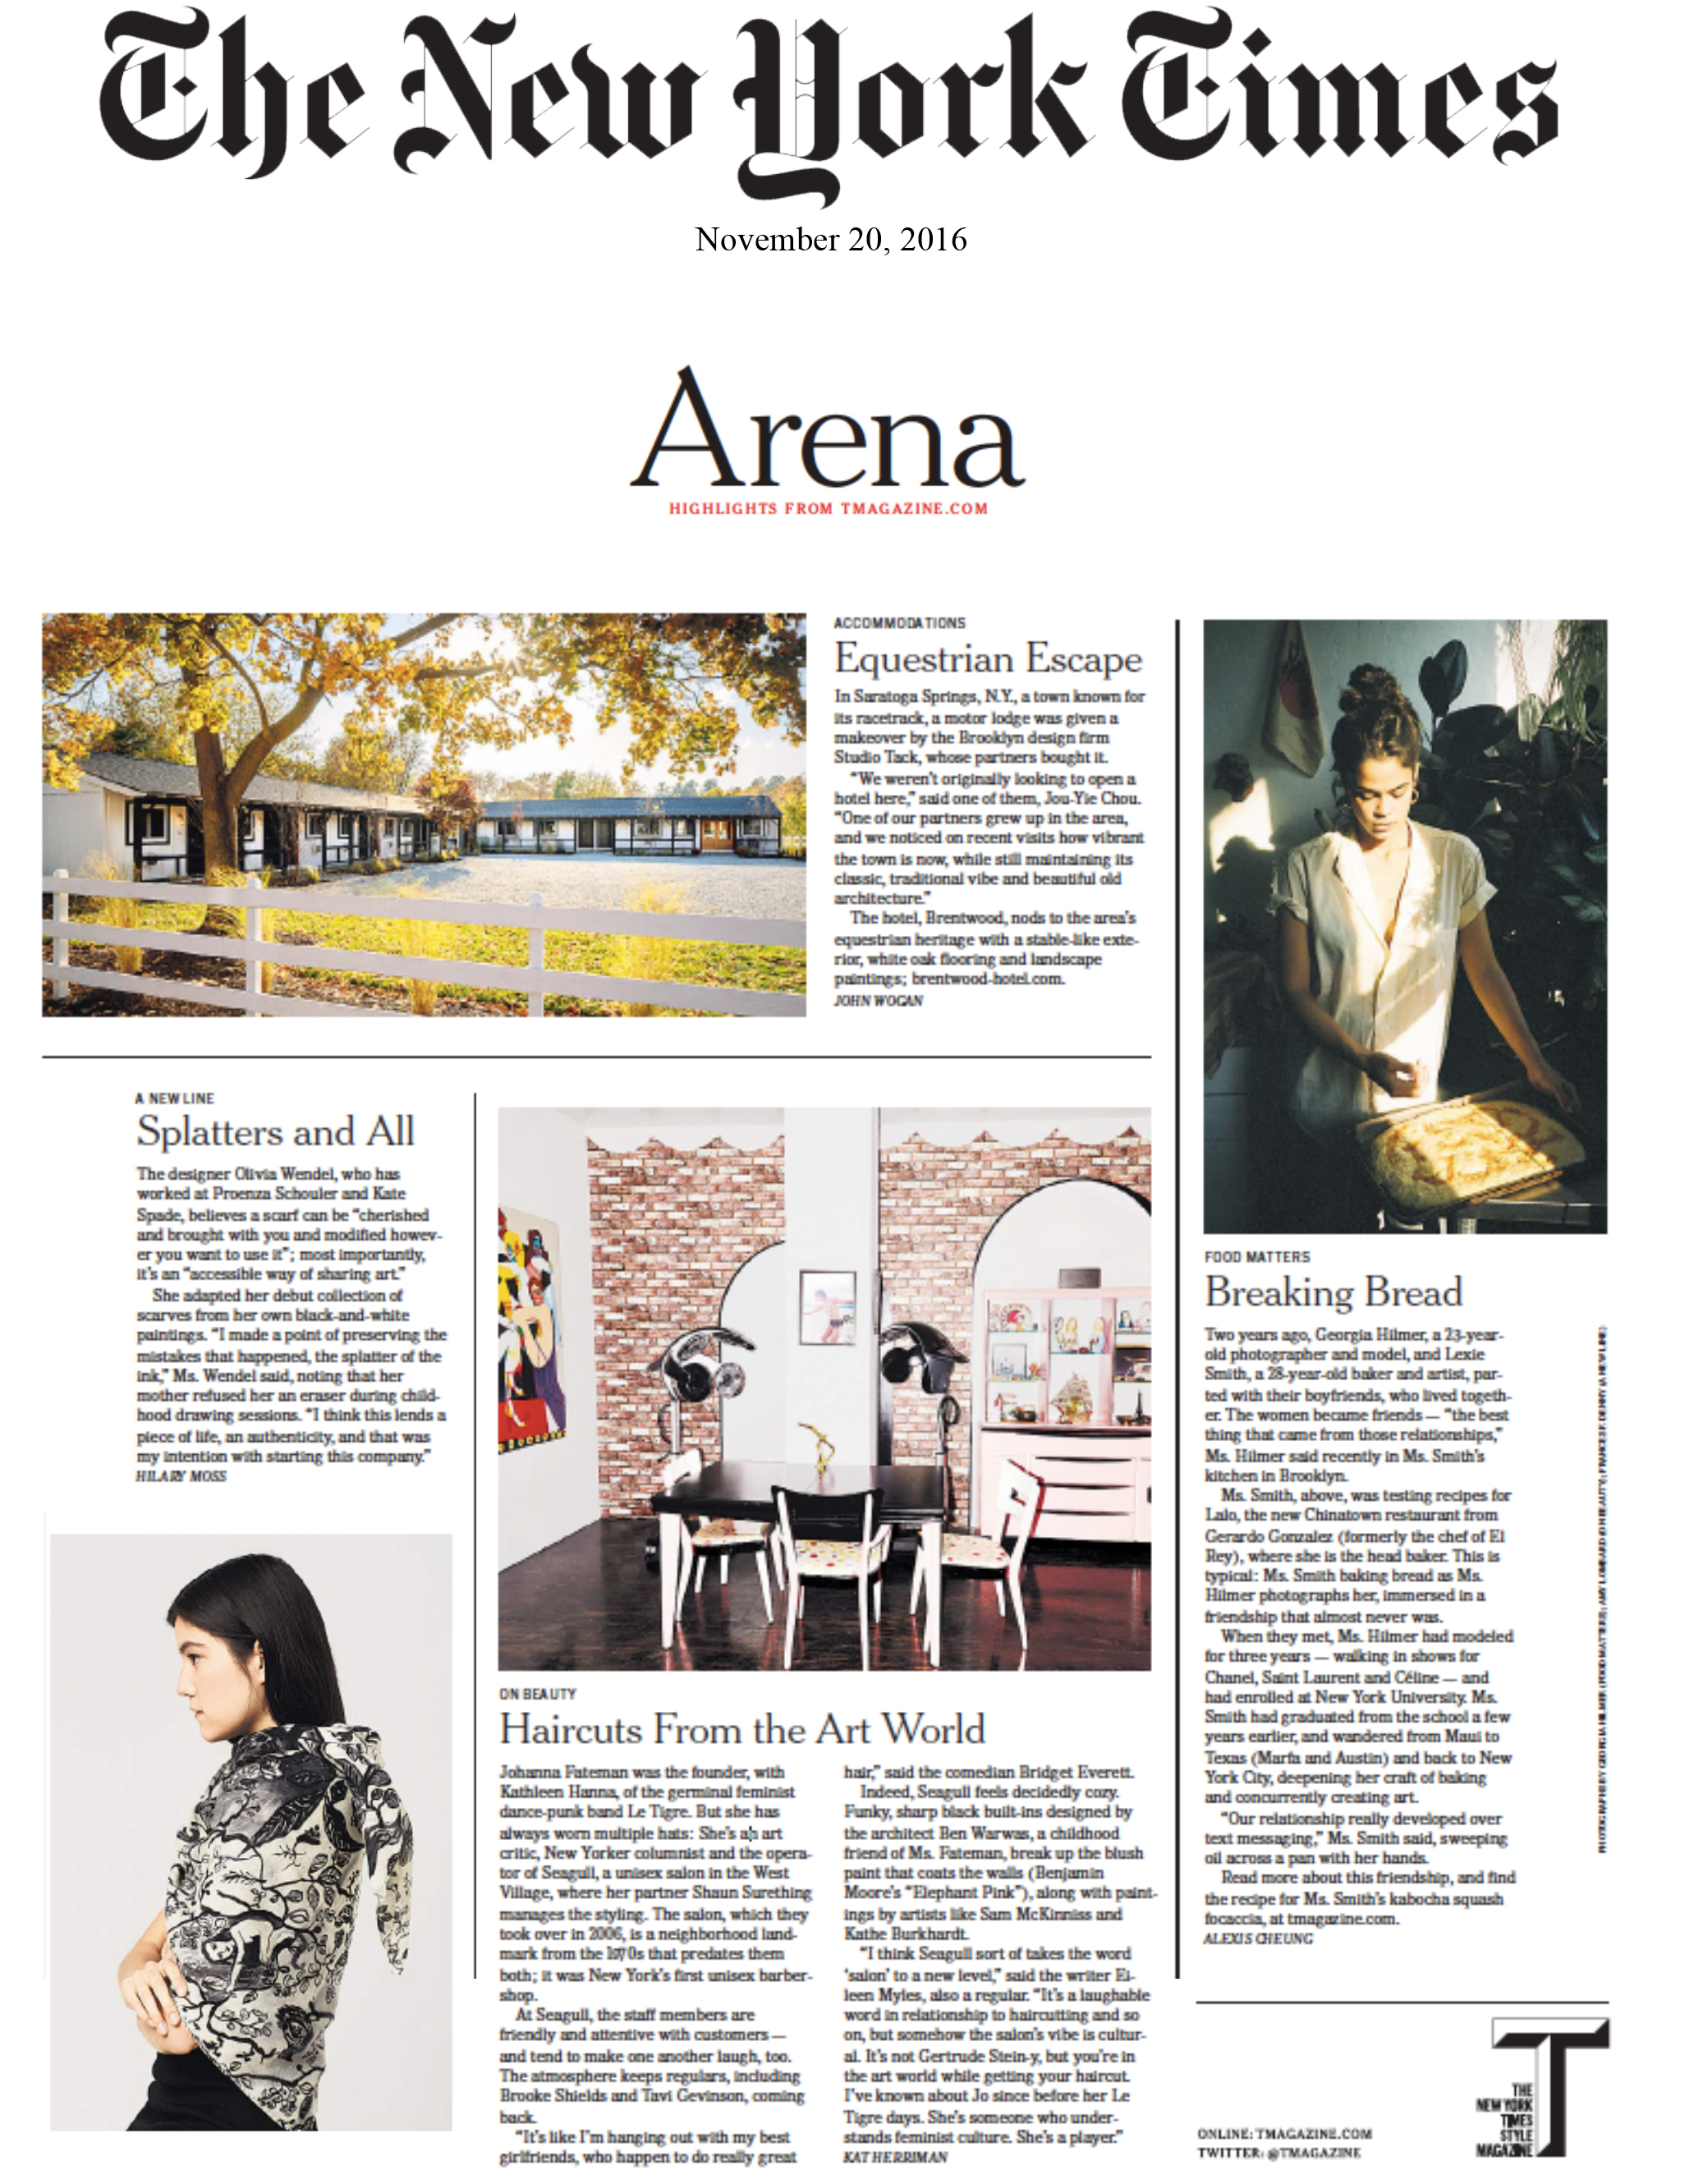 NY Times | The Brentwood